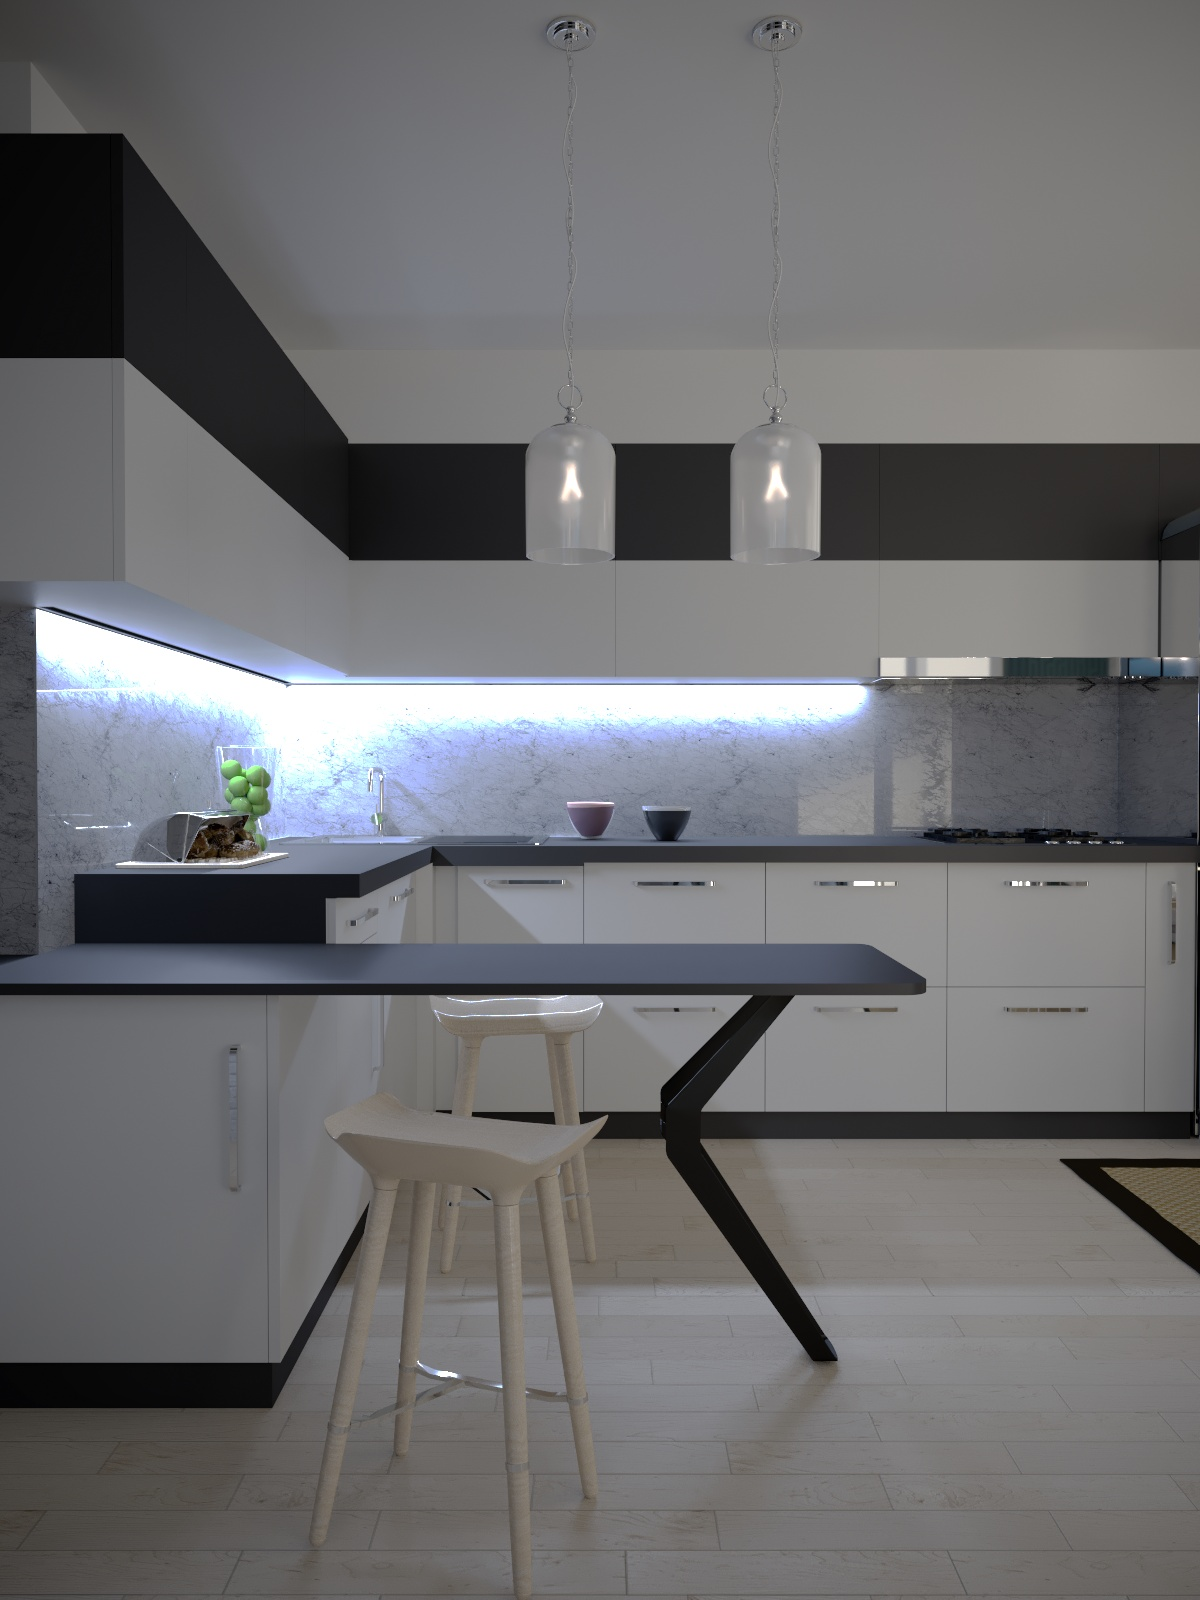 ion turcanu johny design interior modern bucatarie kitchen (3)